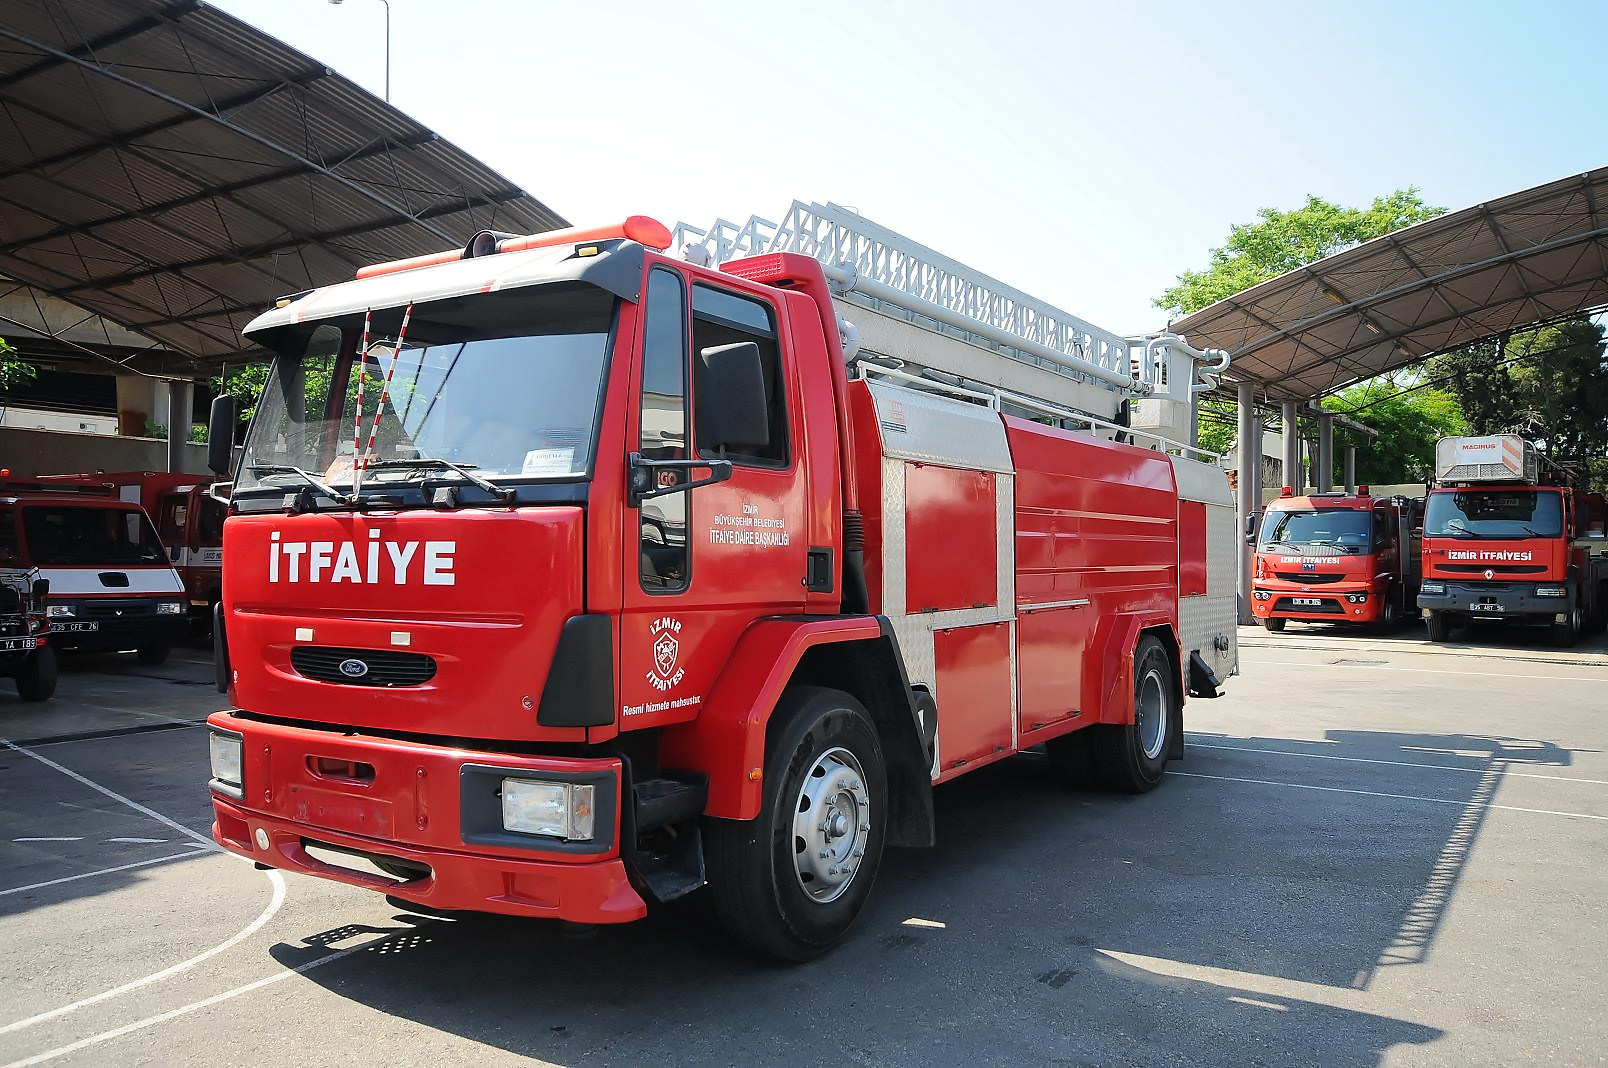 Istanbul Fire Brigade, Protecting Istanbul Since 1874.